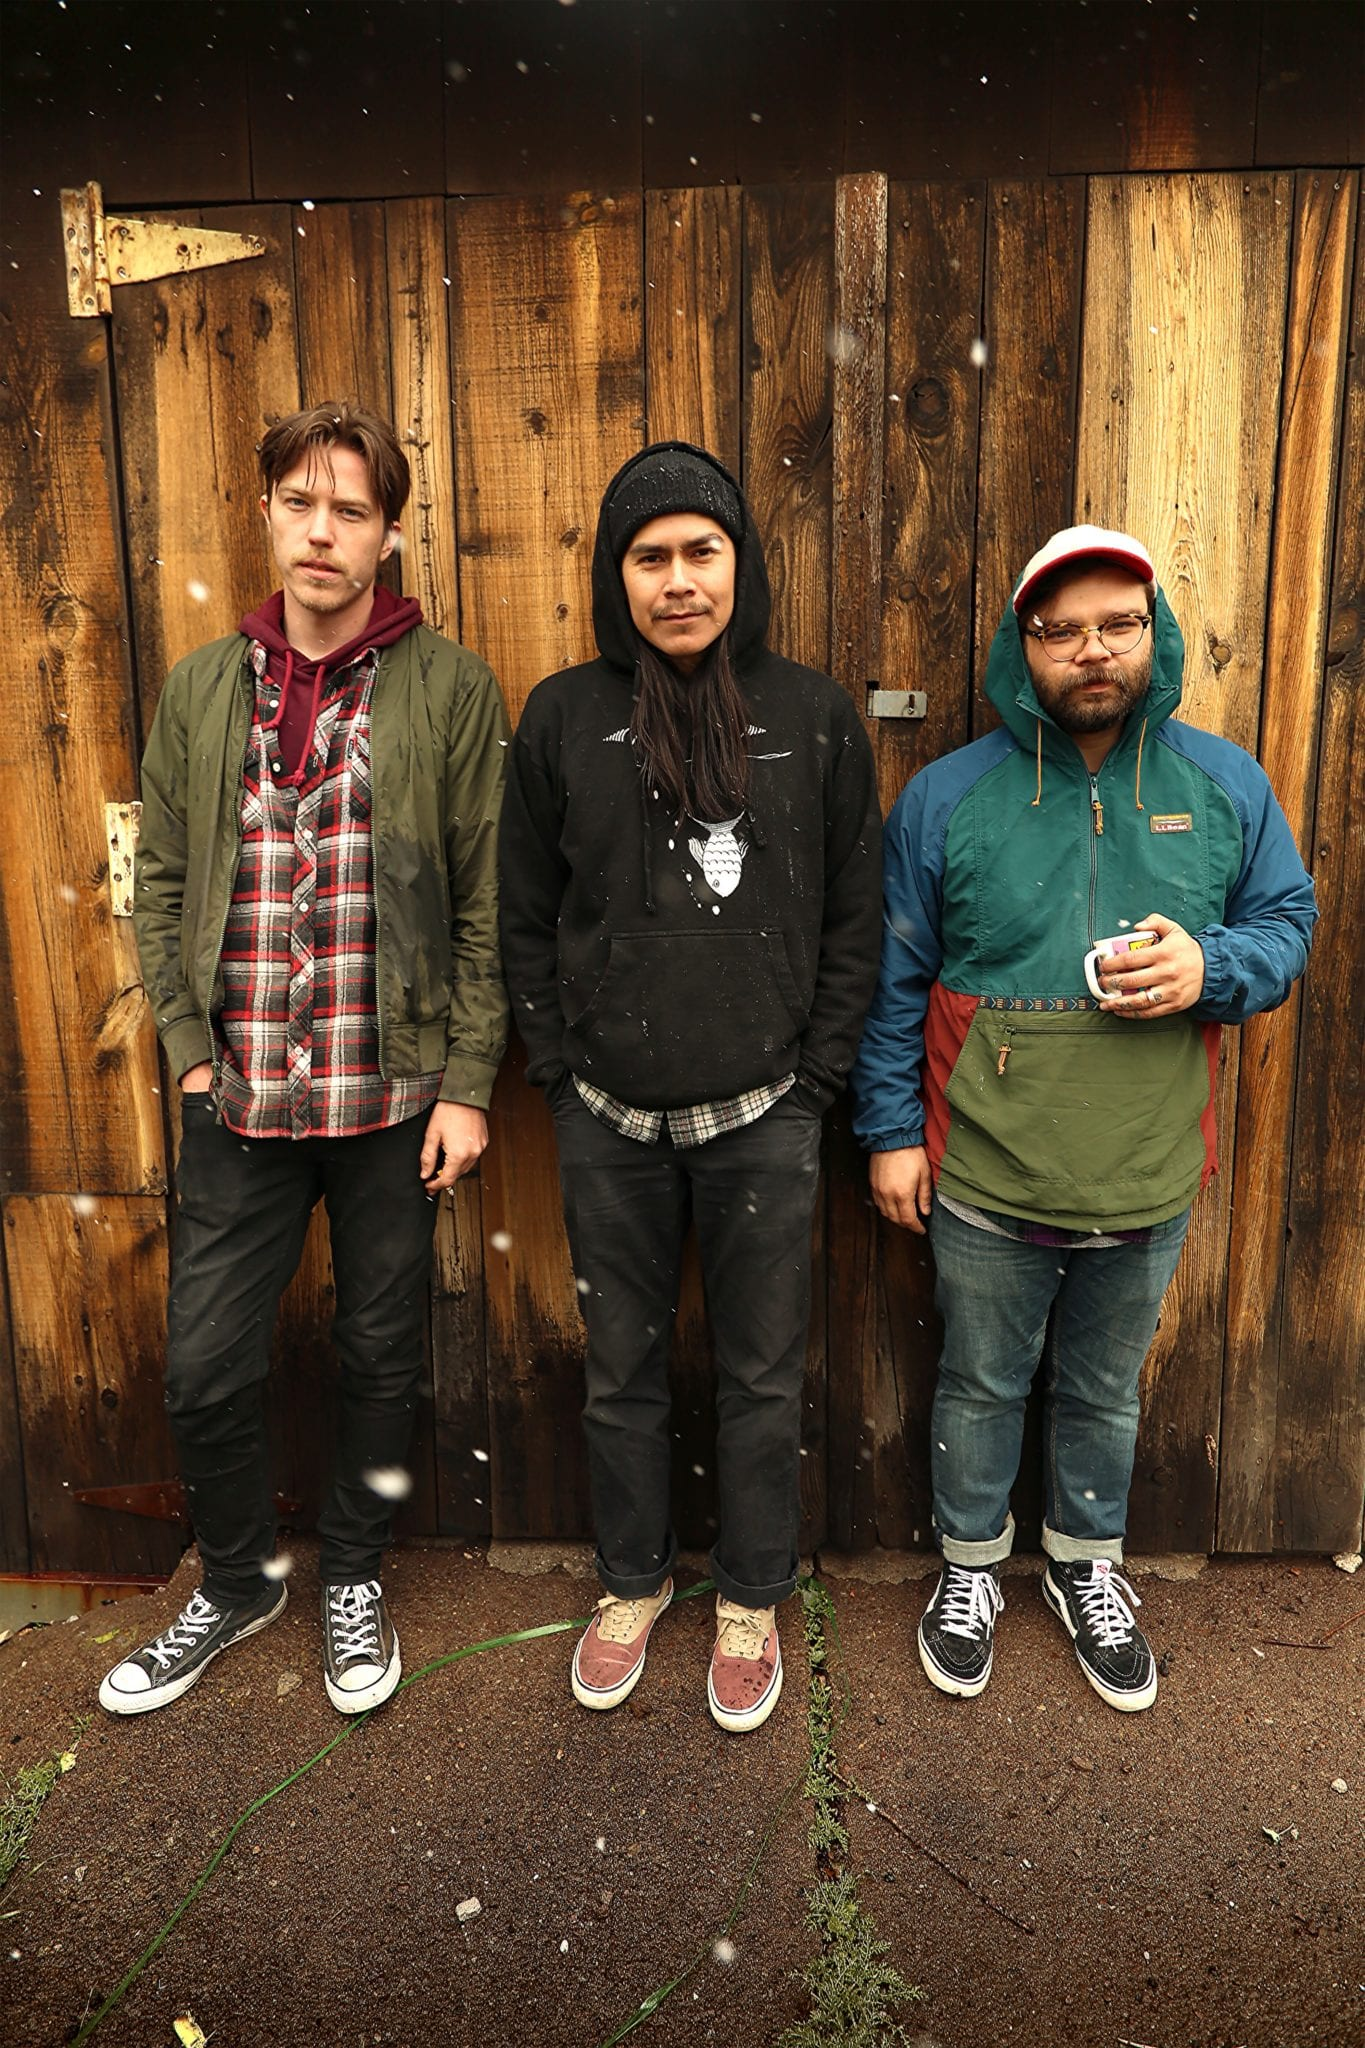 "A photograph of 3 musicians from the band ""The Savages"". They are shown standing in a horizontal row in front of a wood door with white hinges, the hinges have rust on them. Each member of the band is wearing a different outfit. The individual in the center and on the right have hoods up from their sweaters and coats. The member of the band on the left does not have a hood. The individual on the far right is holding a mug.The ground they are standing on is concrete and has small plants growing in a crack."